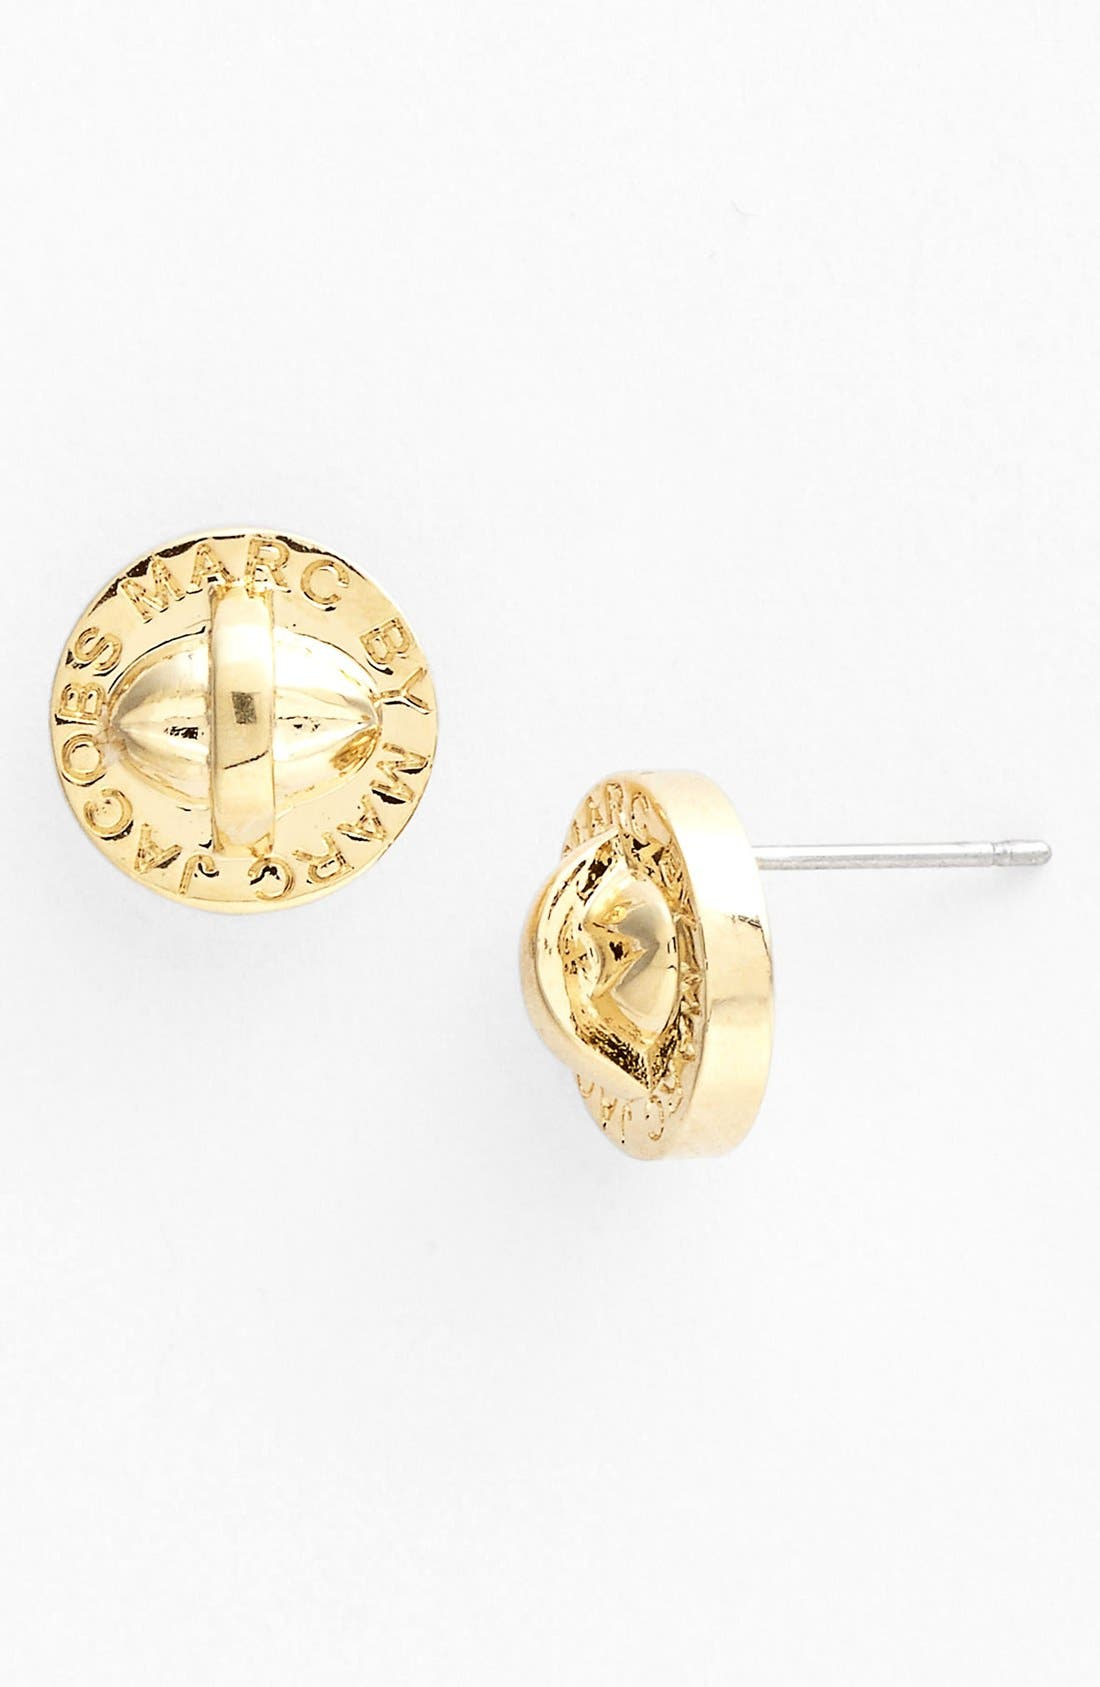 Main Image - MARC BY MARC JACOBS 'Turnlock' Large Stud Earrings (Nordstrom Exclusive)